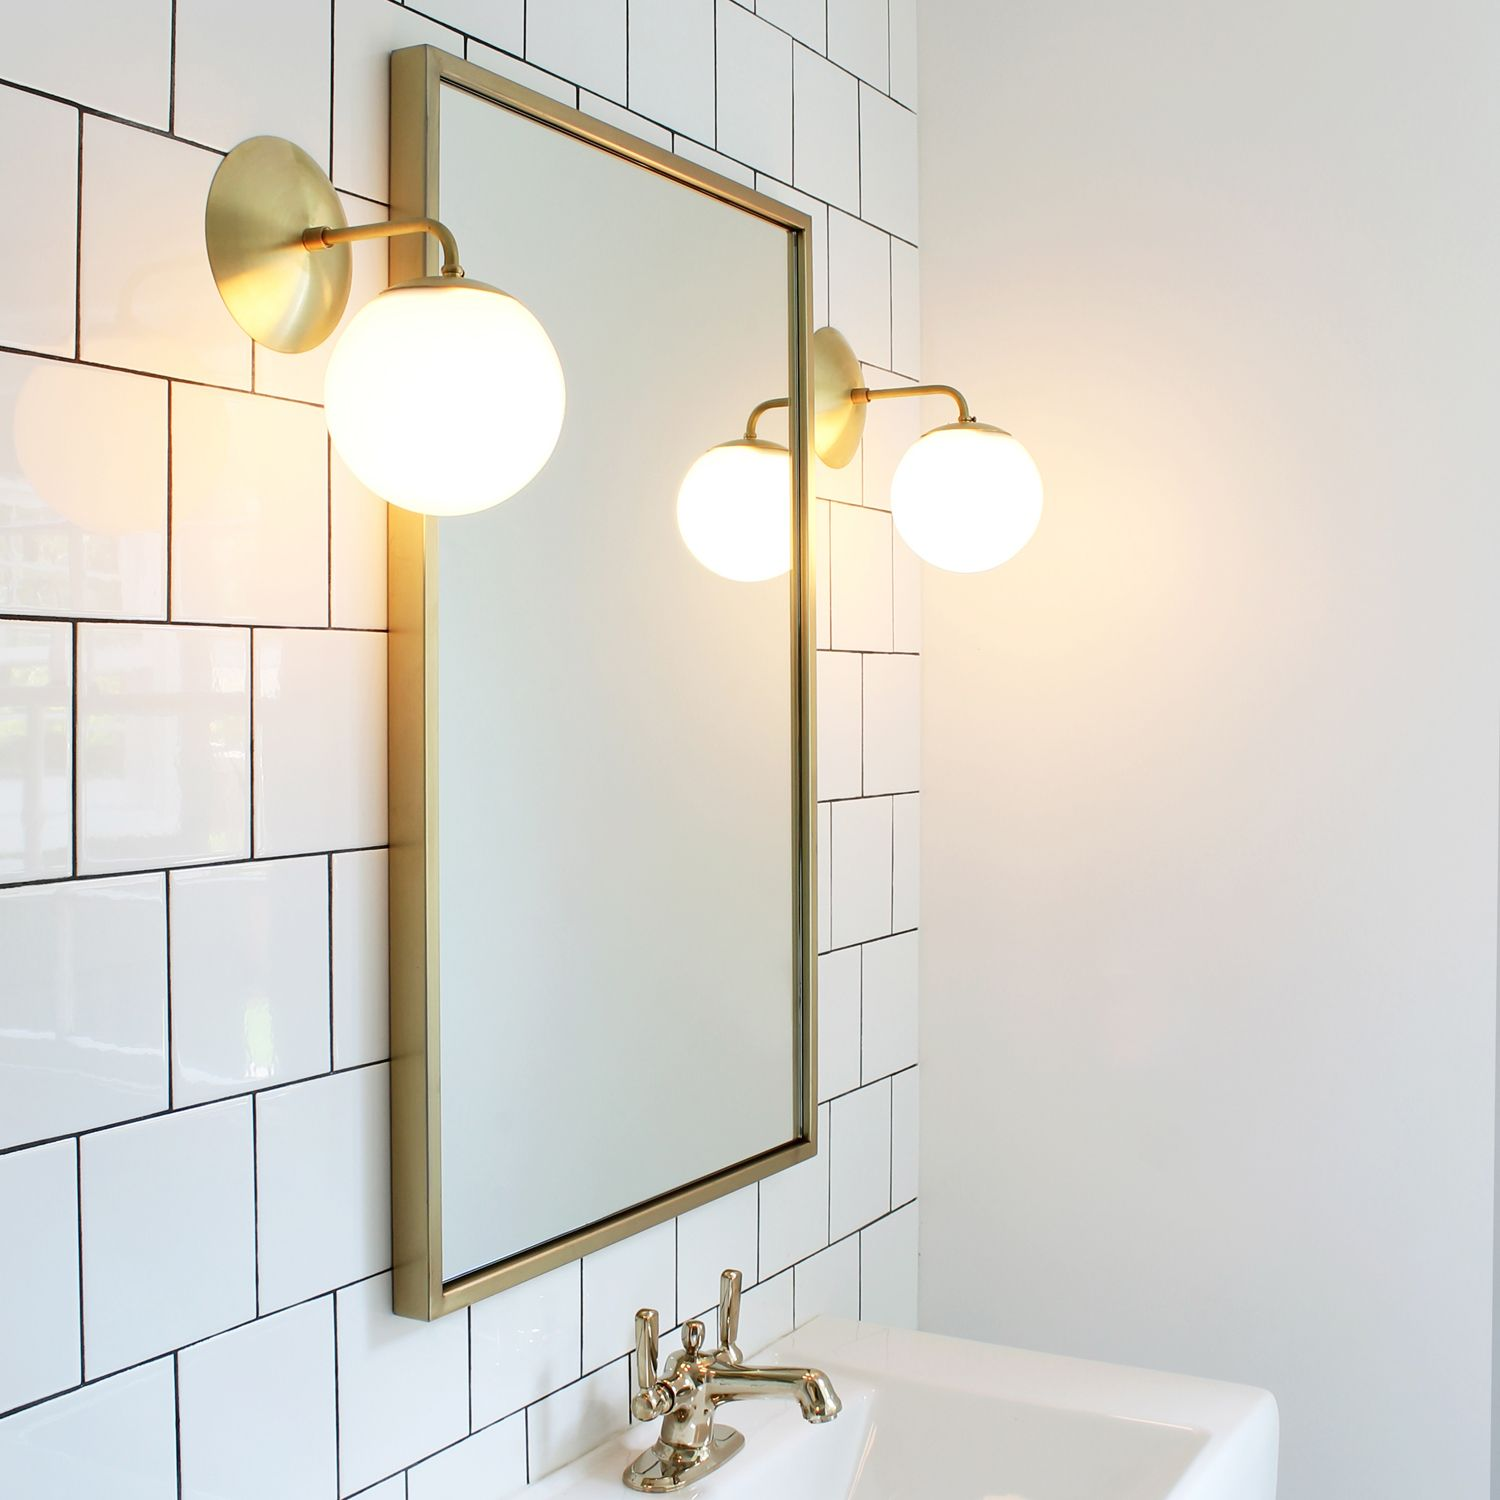 Alto Sconce Black Grout Plumbing Fixtures And Grout - Square bathroom sconce